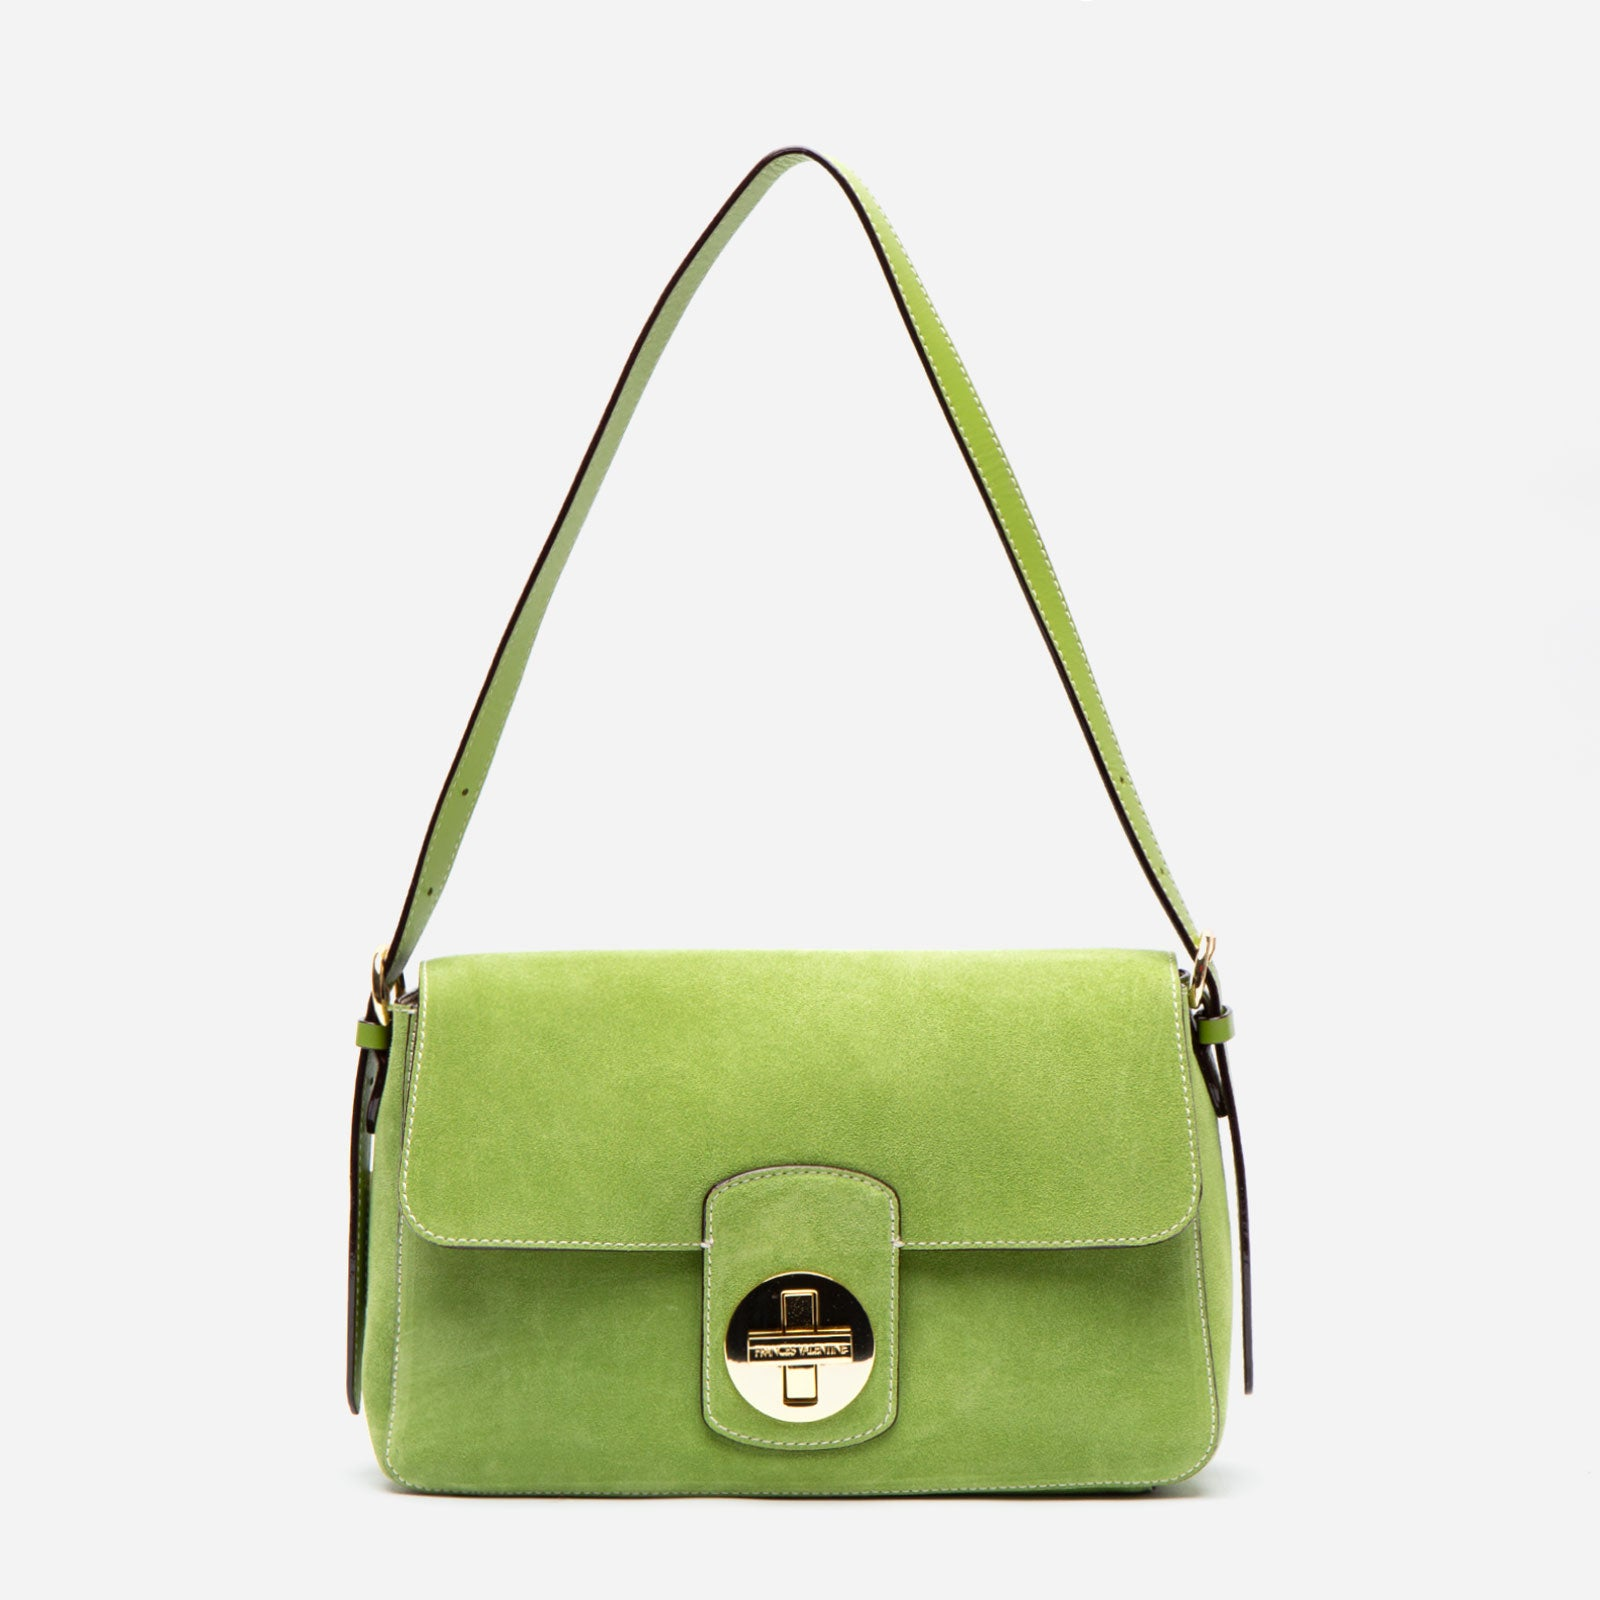 Ruby Shoulder Bag Suede Fern - Frances Valentine